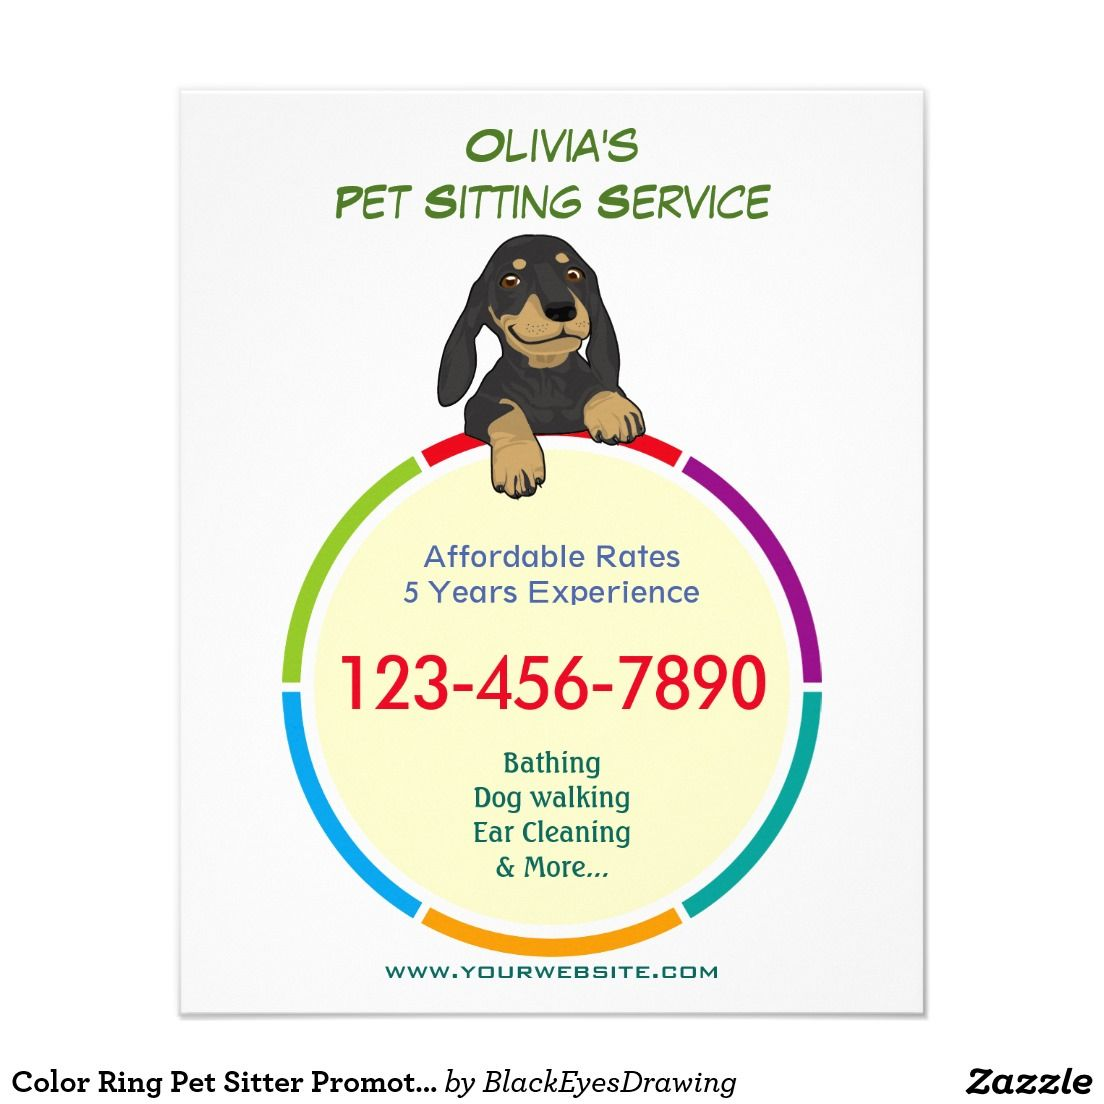 color ring pet sitter promotional flyer pet sitter grooming